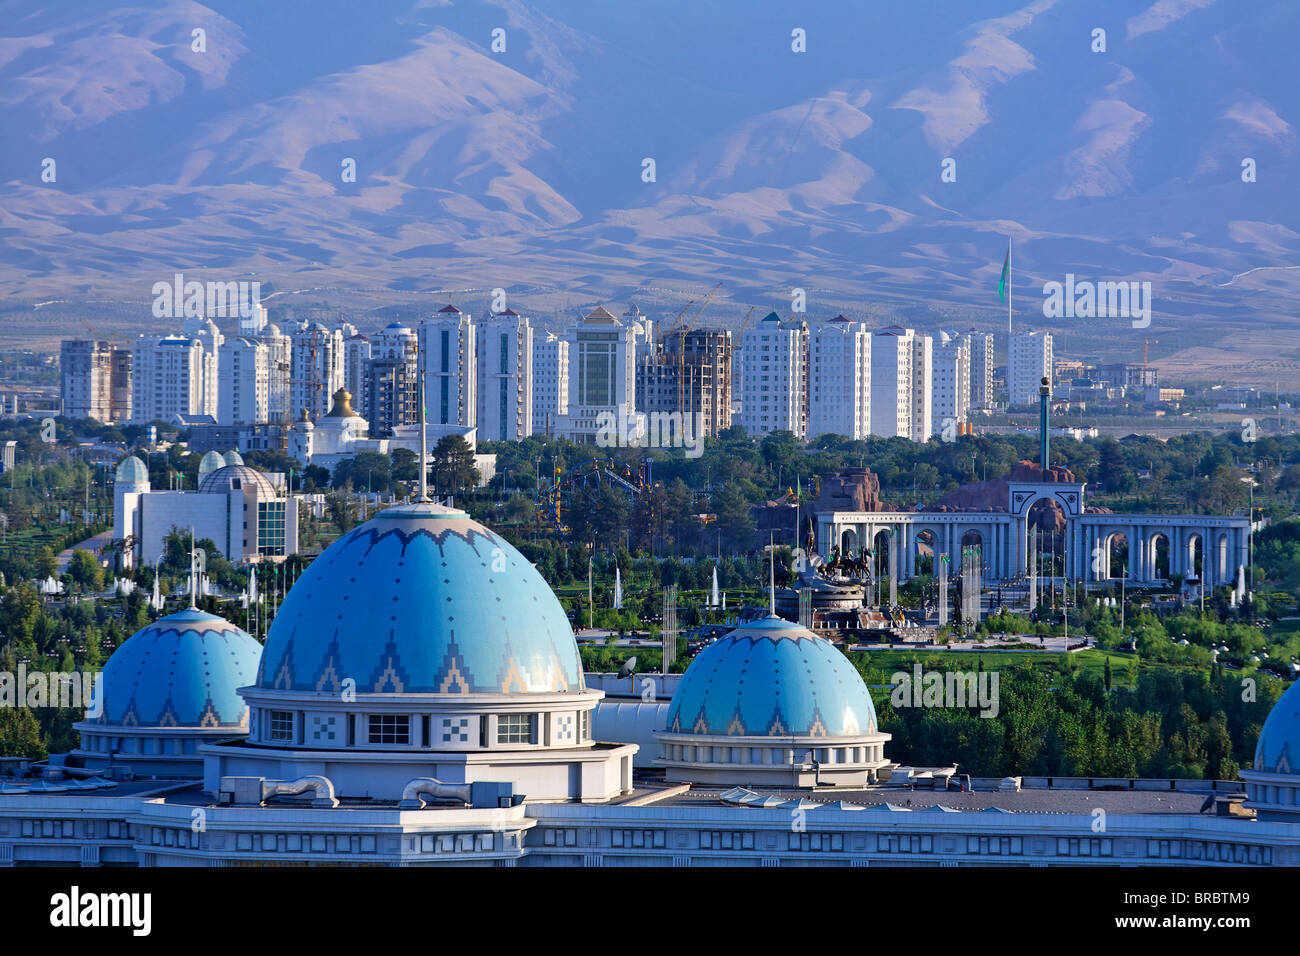 Turkmenistan - Ashgabat - the blue domes of the Ruhyyet Palace - Stock Image